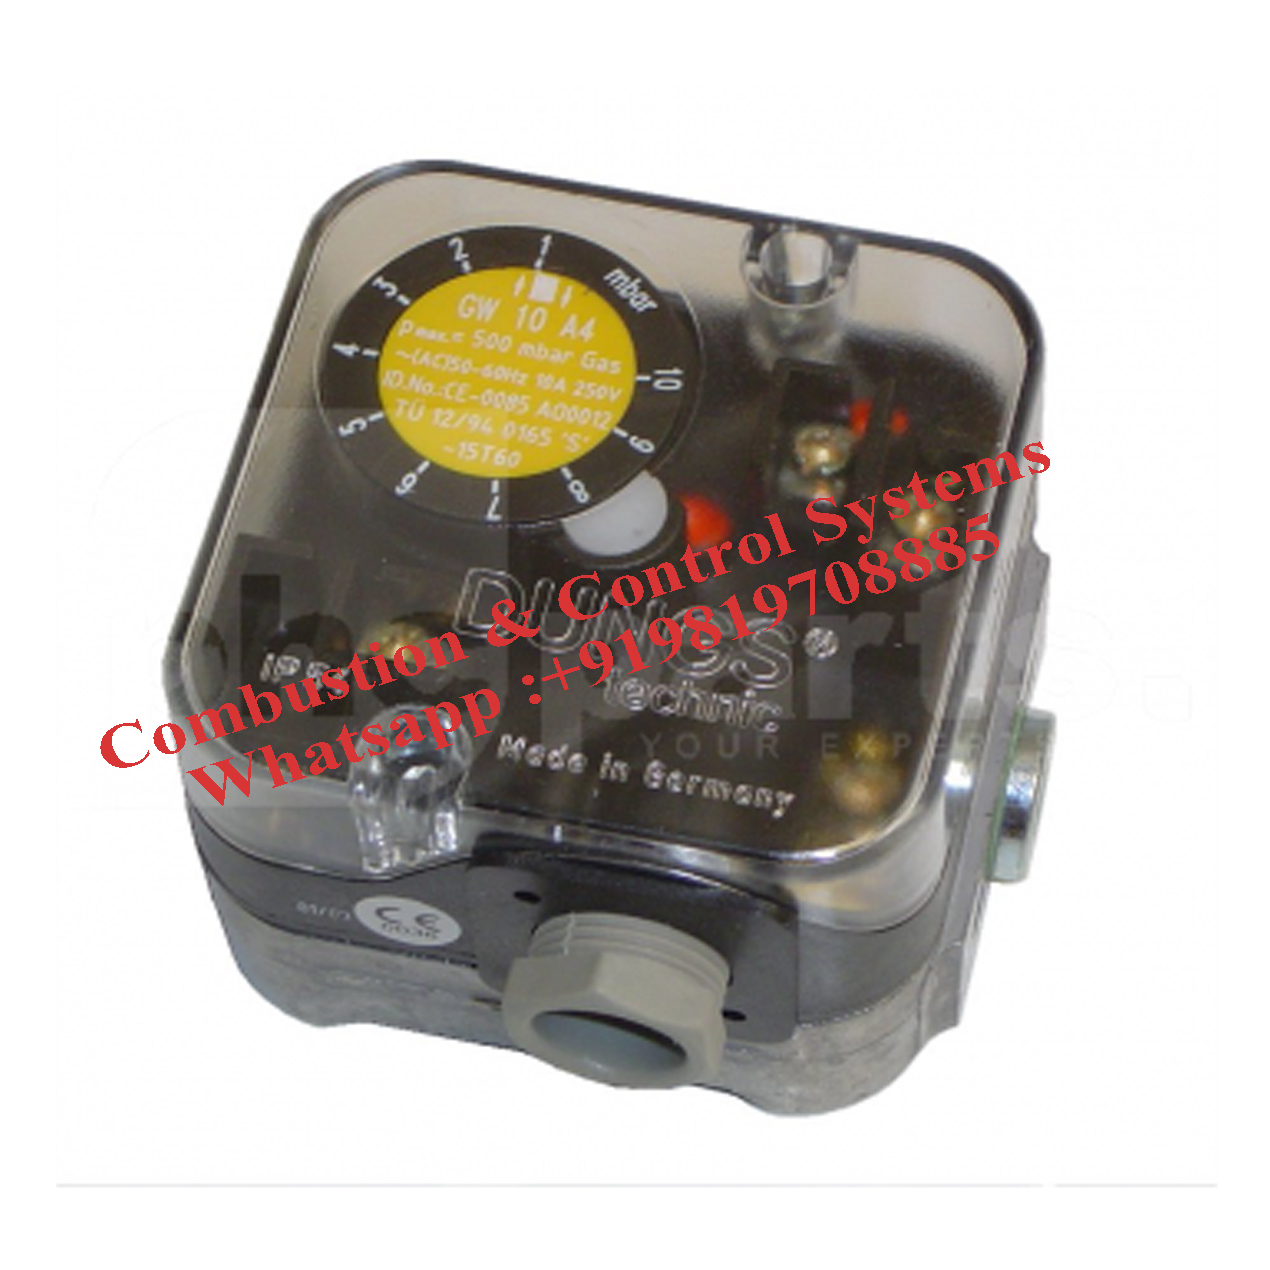 Dungs GW10A4 Pressure switch